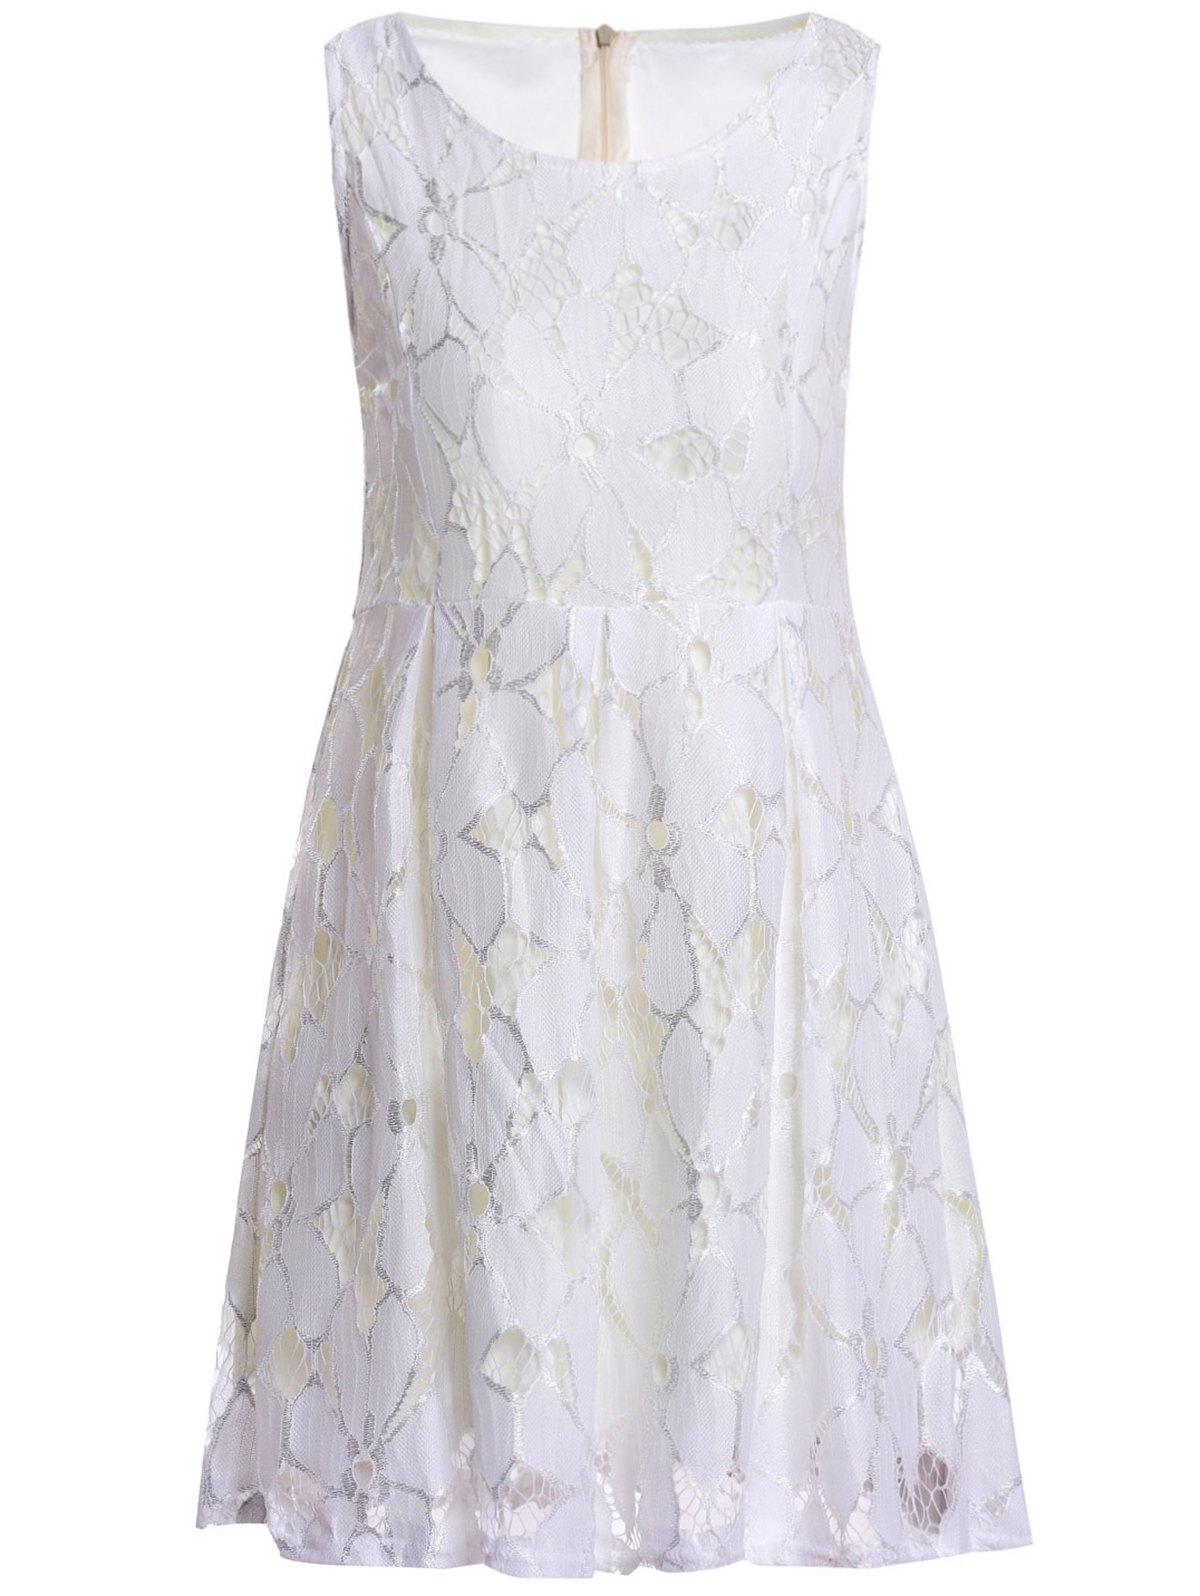 Sleeveless Ladylike Style Round Collar Jacquard Solid Color Lace Pleated Women's Dress - WHITE S